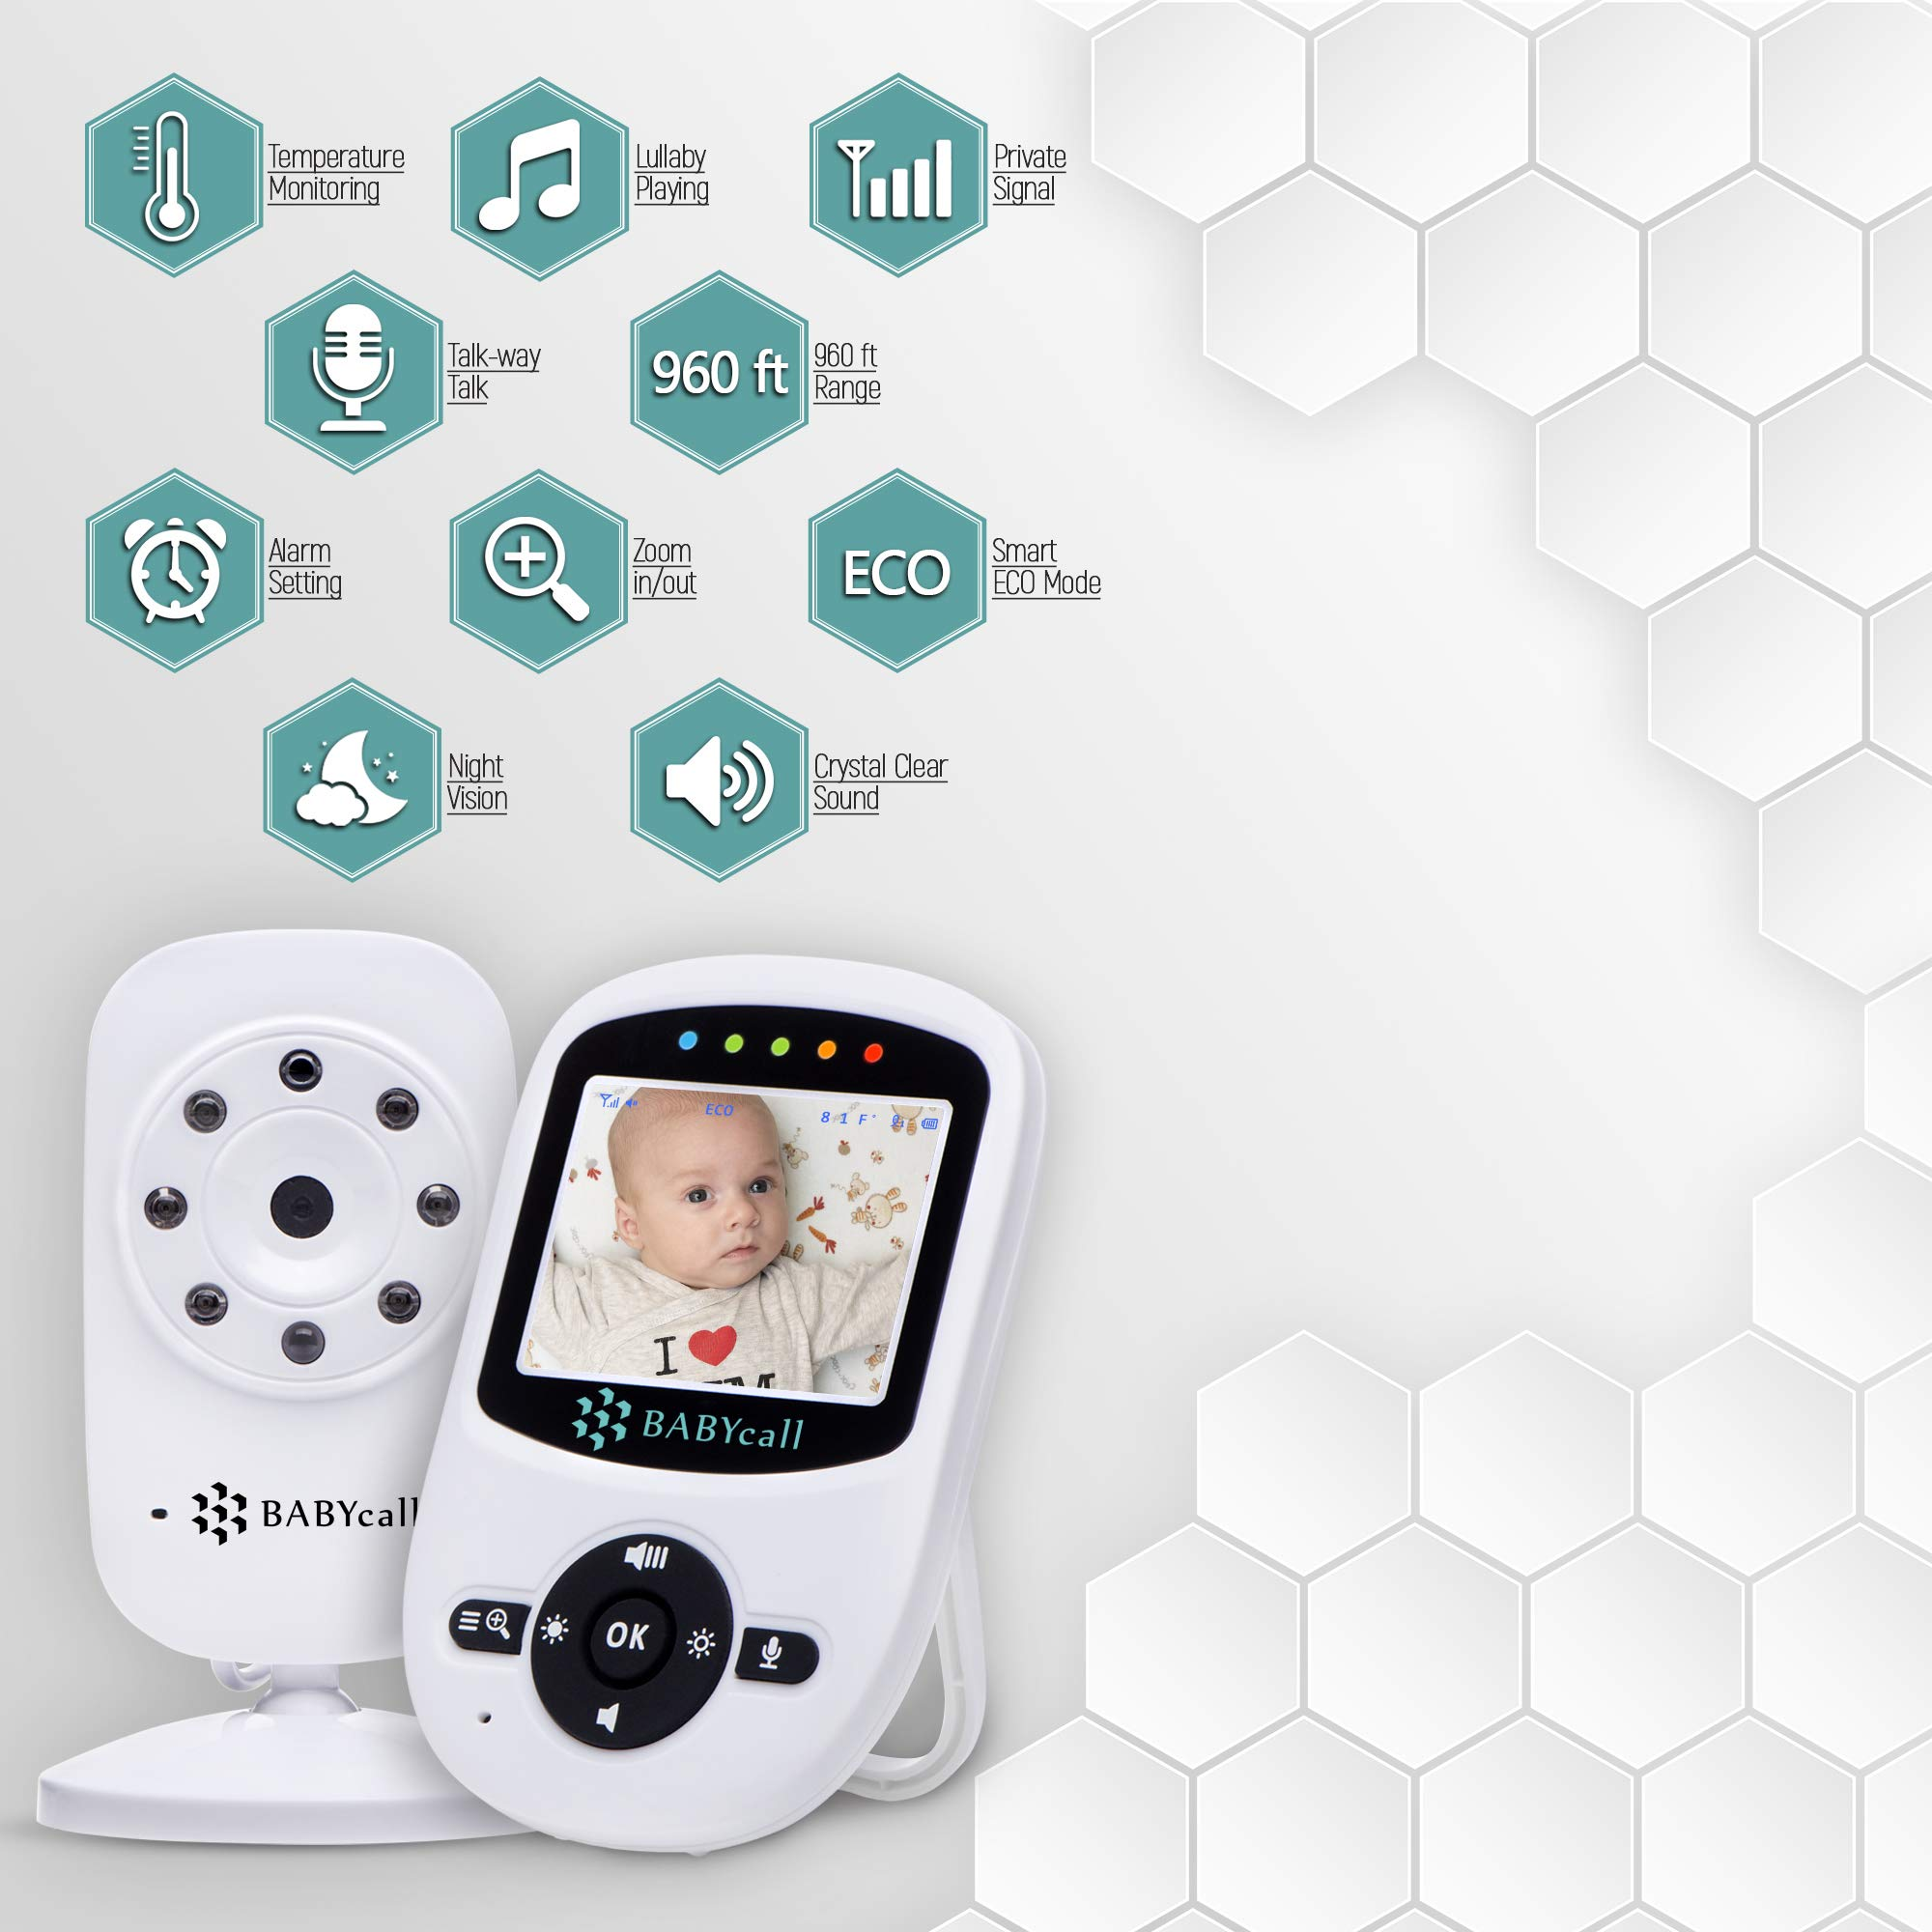 Video Baby Monitor with Camera - Upgrade 2019 Model of Monitoring System with Night Vision, Two Way Audio, Temperature detectors - Long Range Wireless Monitoring by BABYcall by BABYcall (Image #8)